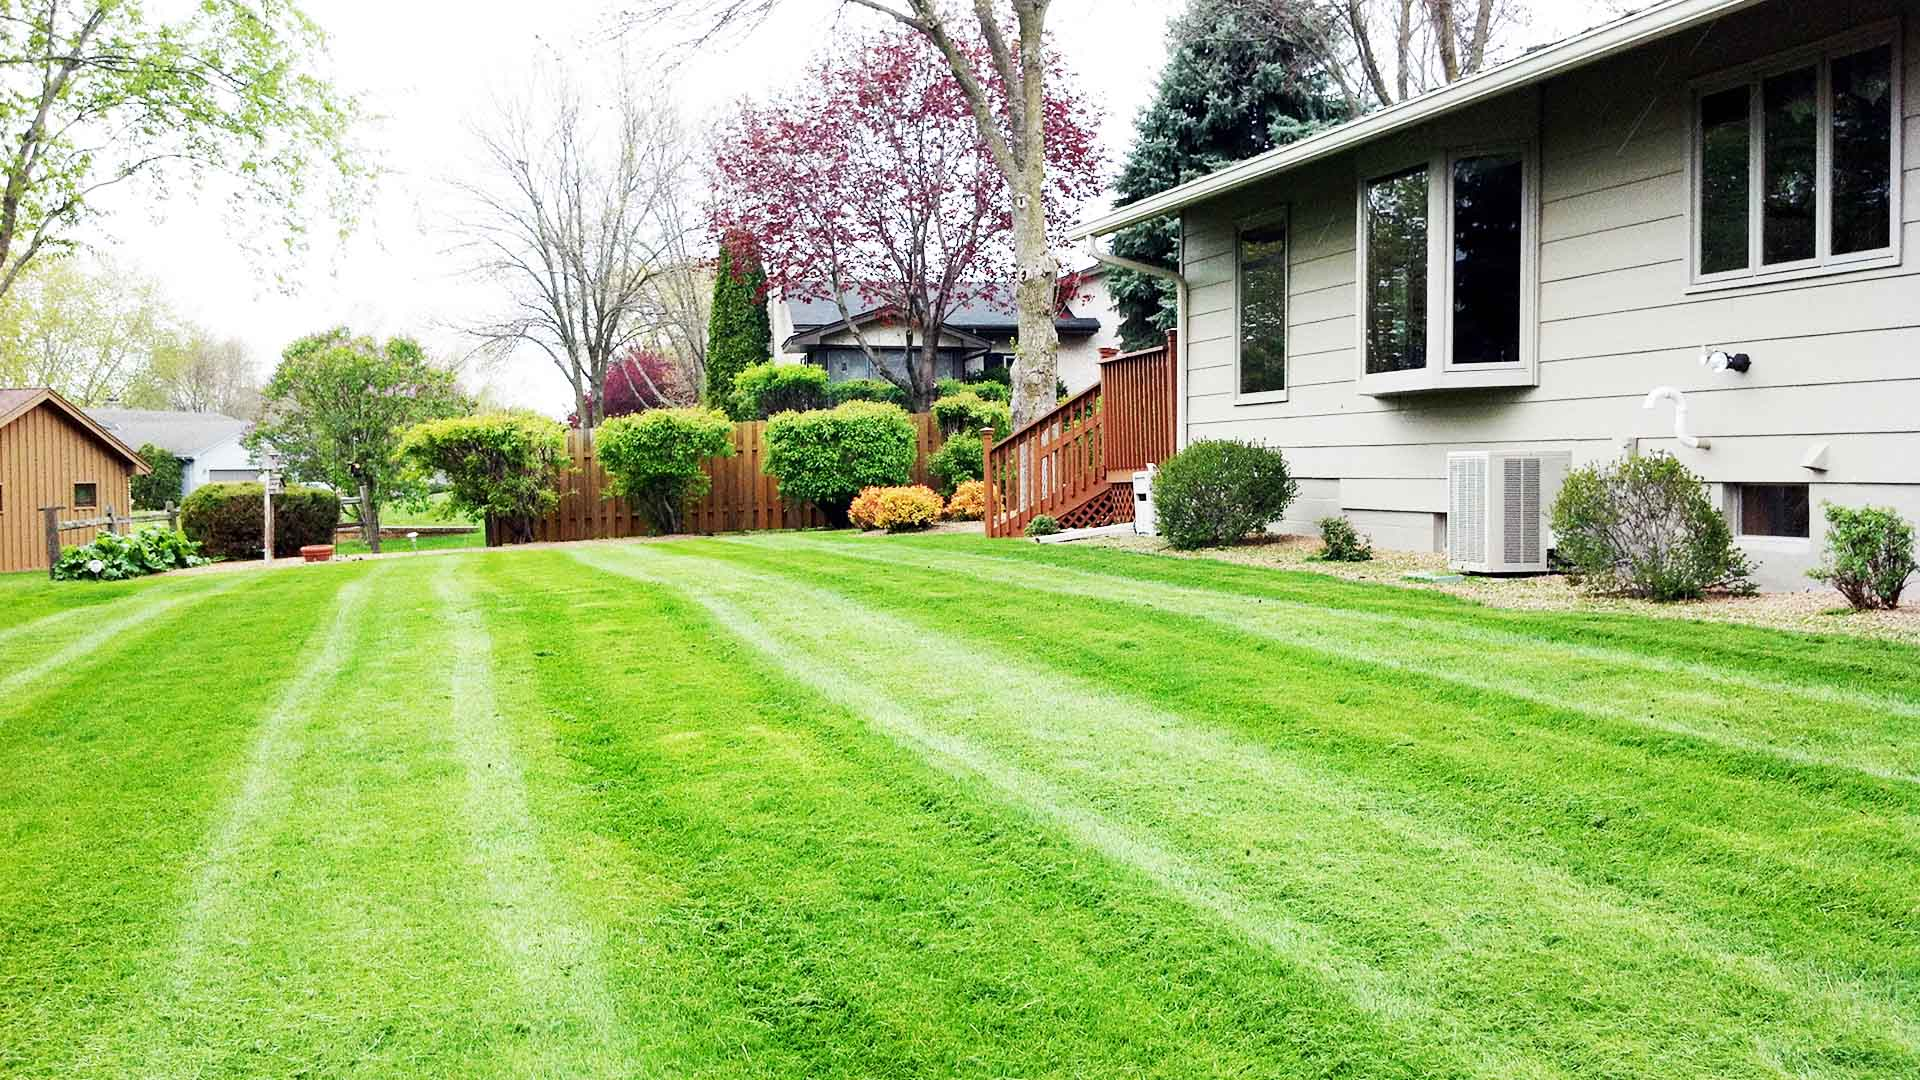 Lawn & Snow Landscape Complete LLC Lawn Care Services, Landscaping Services and Landscaper slide 3